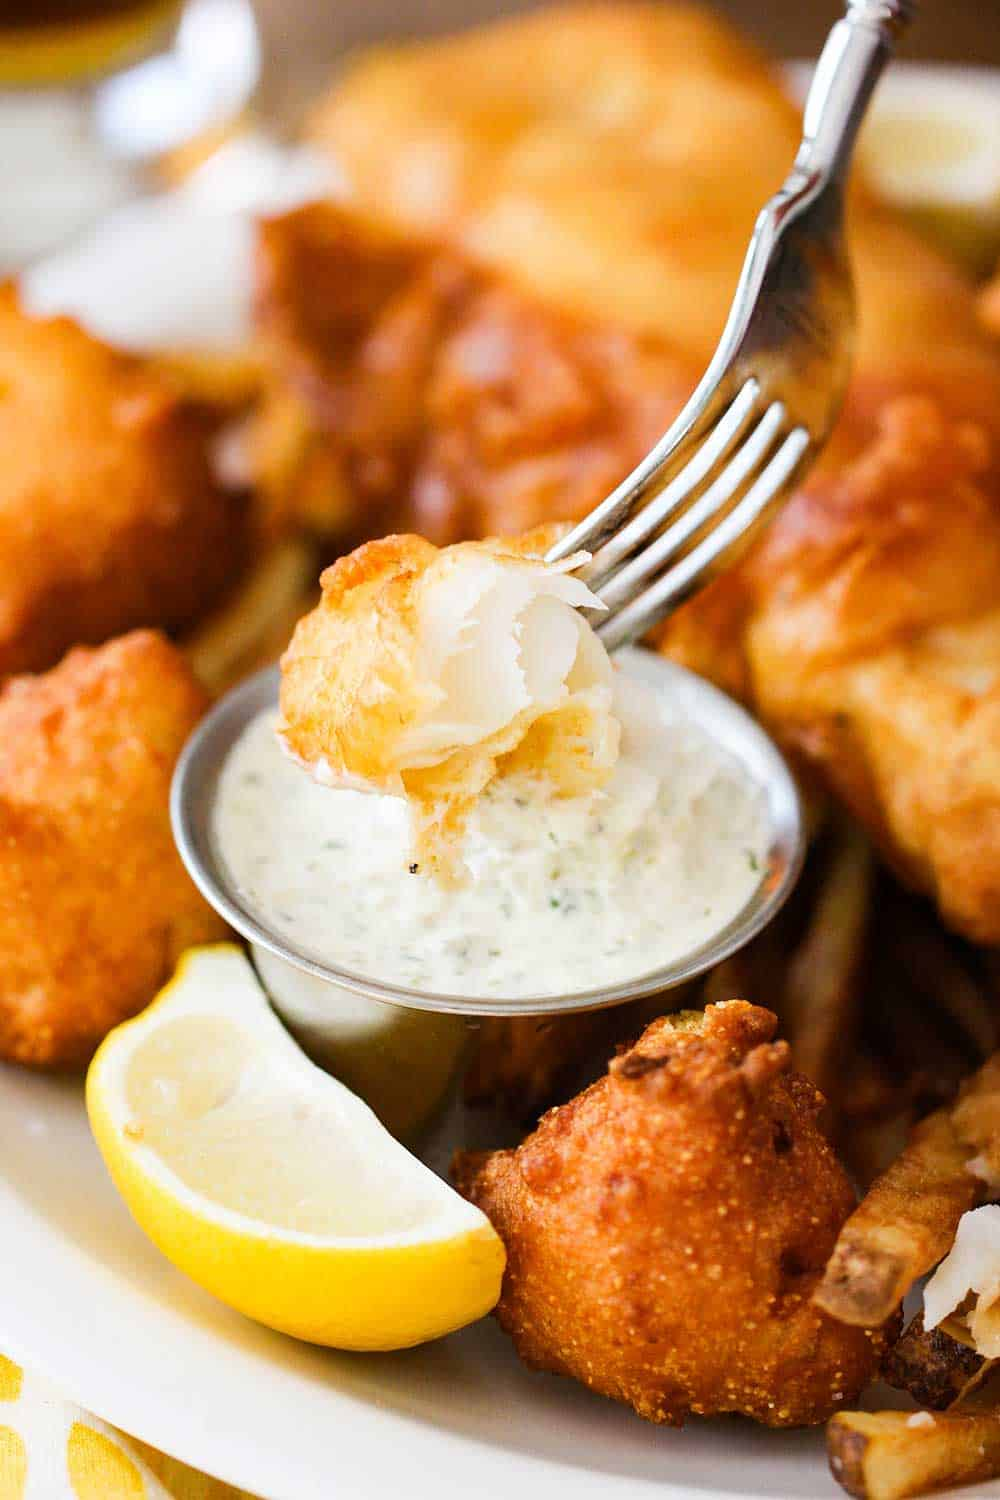 A piece of fried fish in a fork dipped into homemade tartar sauce.